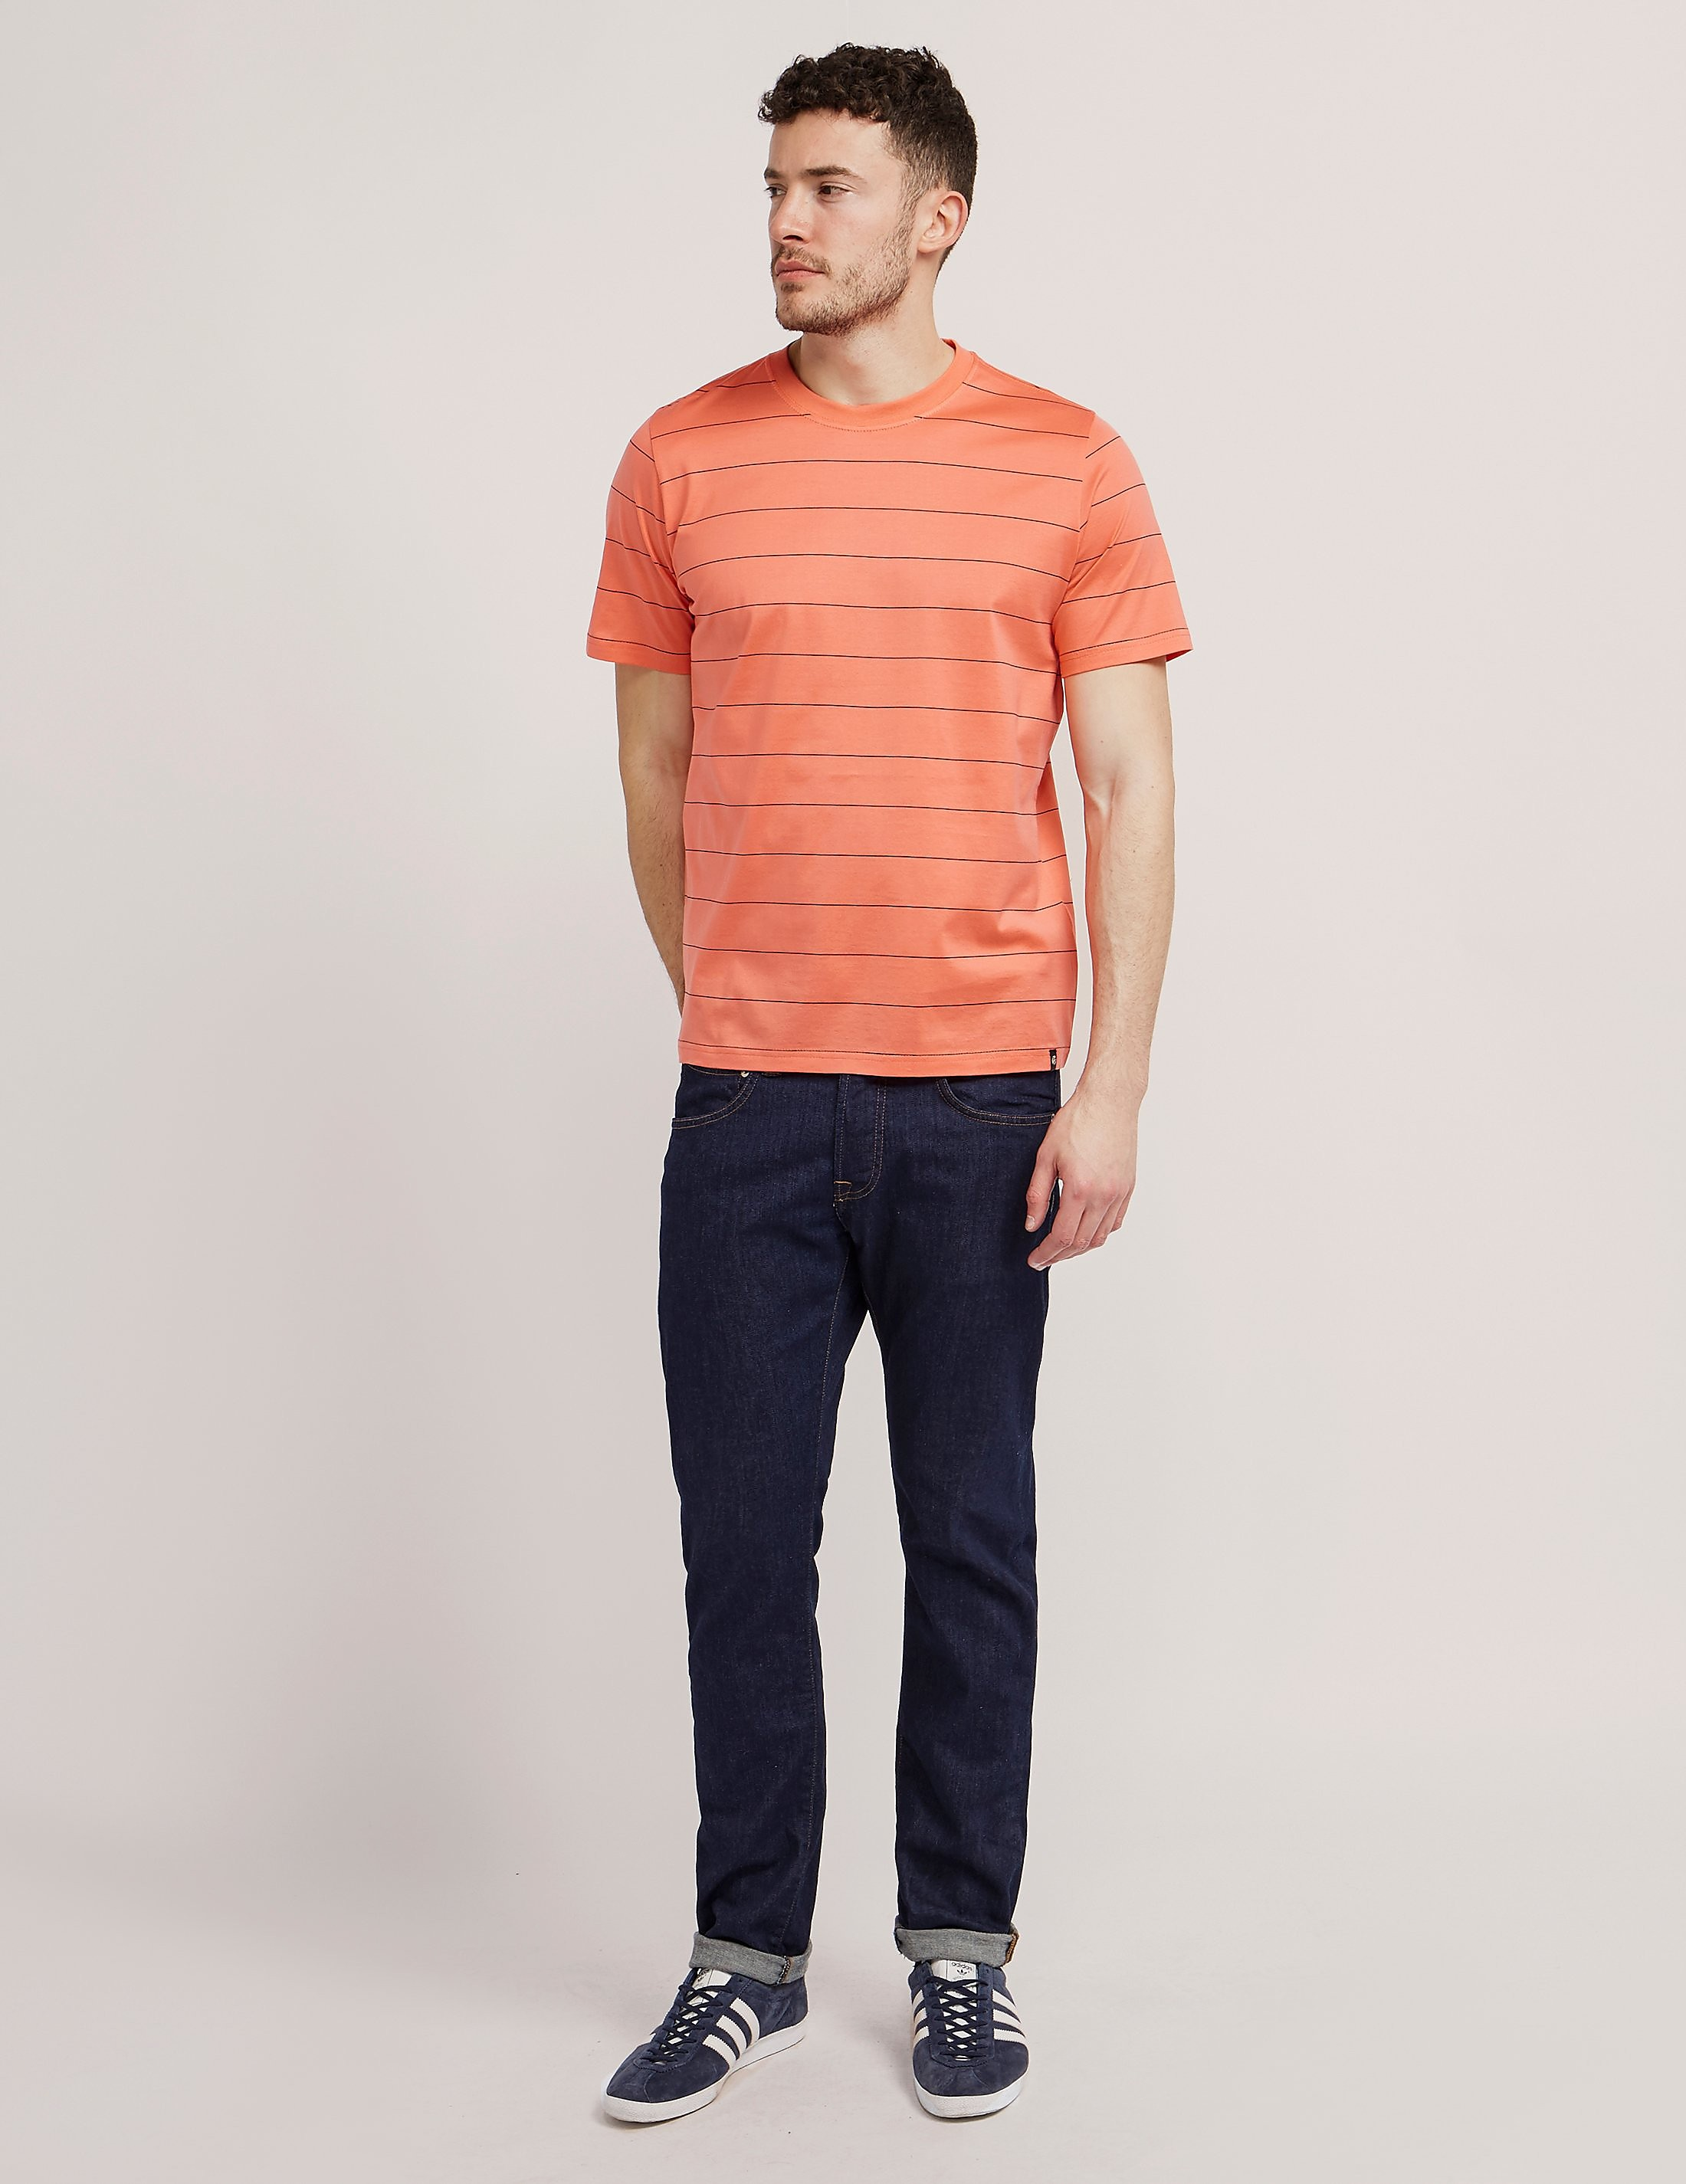 Paul Smith Pin Stripe Crew T-Shirt